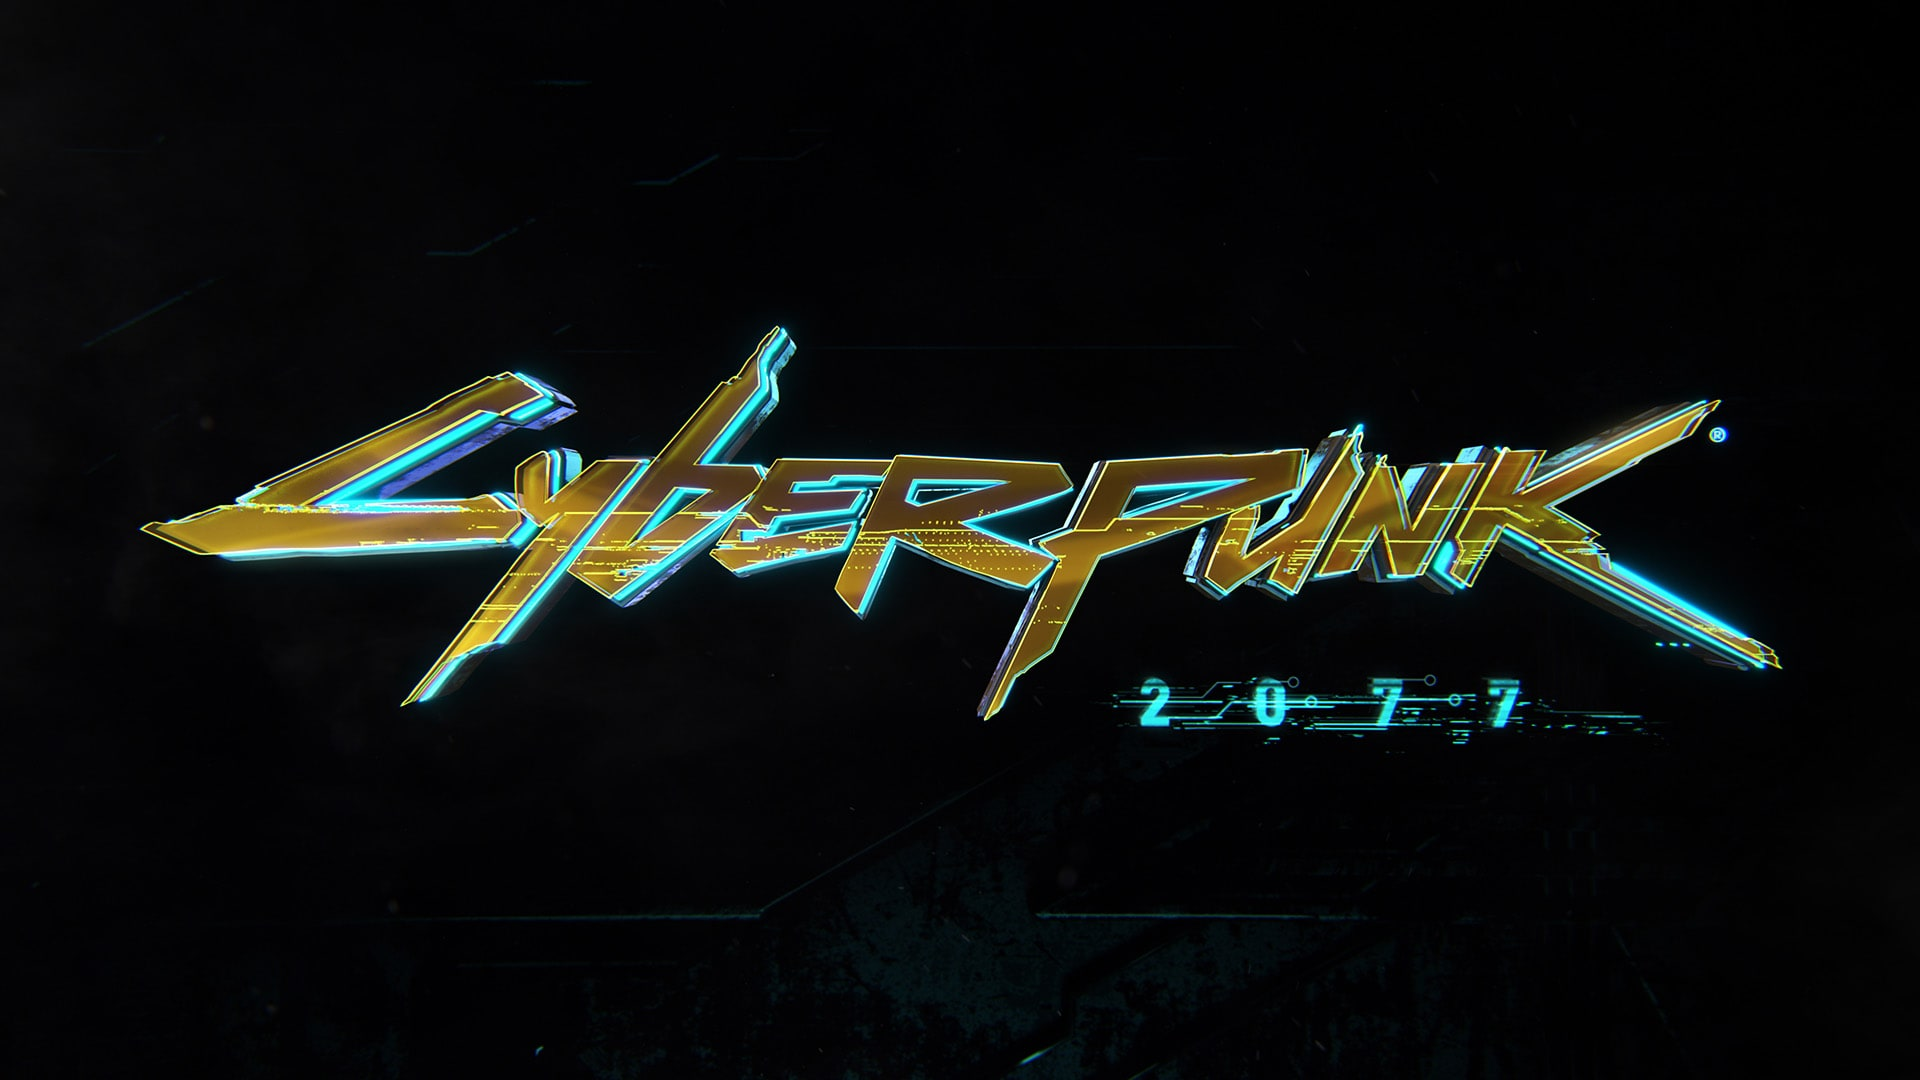 Upcoming 'Cyberpunk 2077' Game Shares 48 Minutes Gameplay [Watch] trailer logotype en